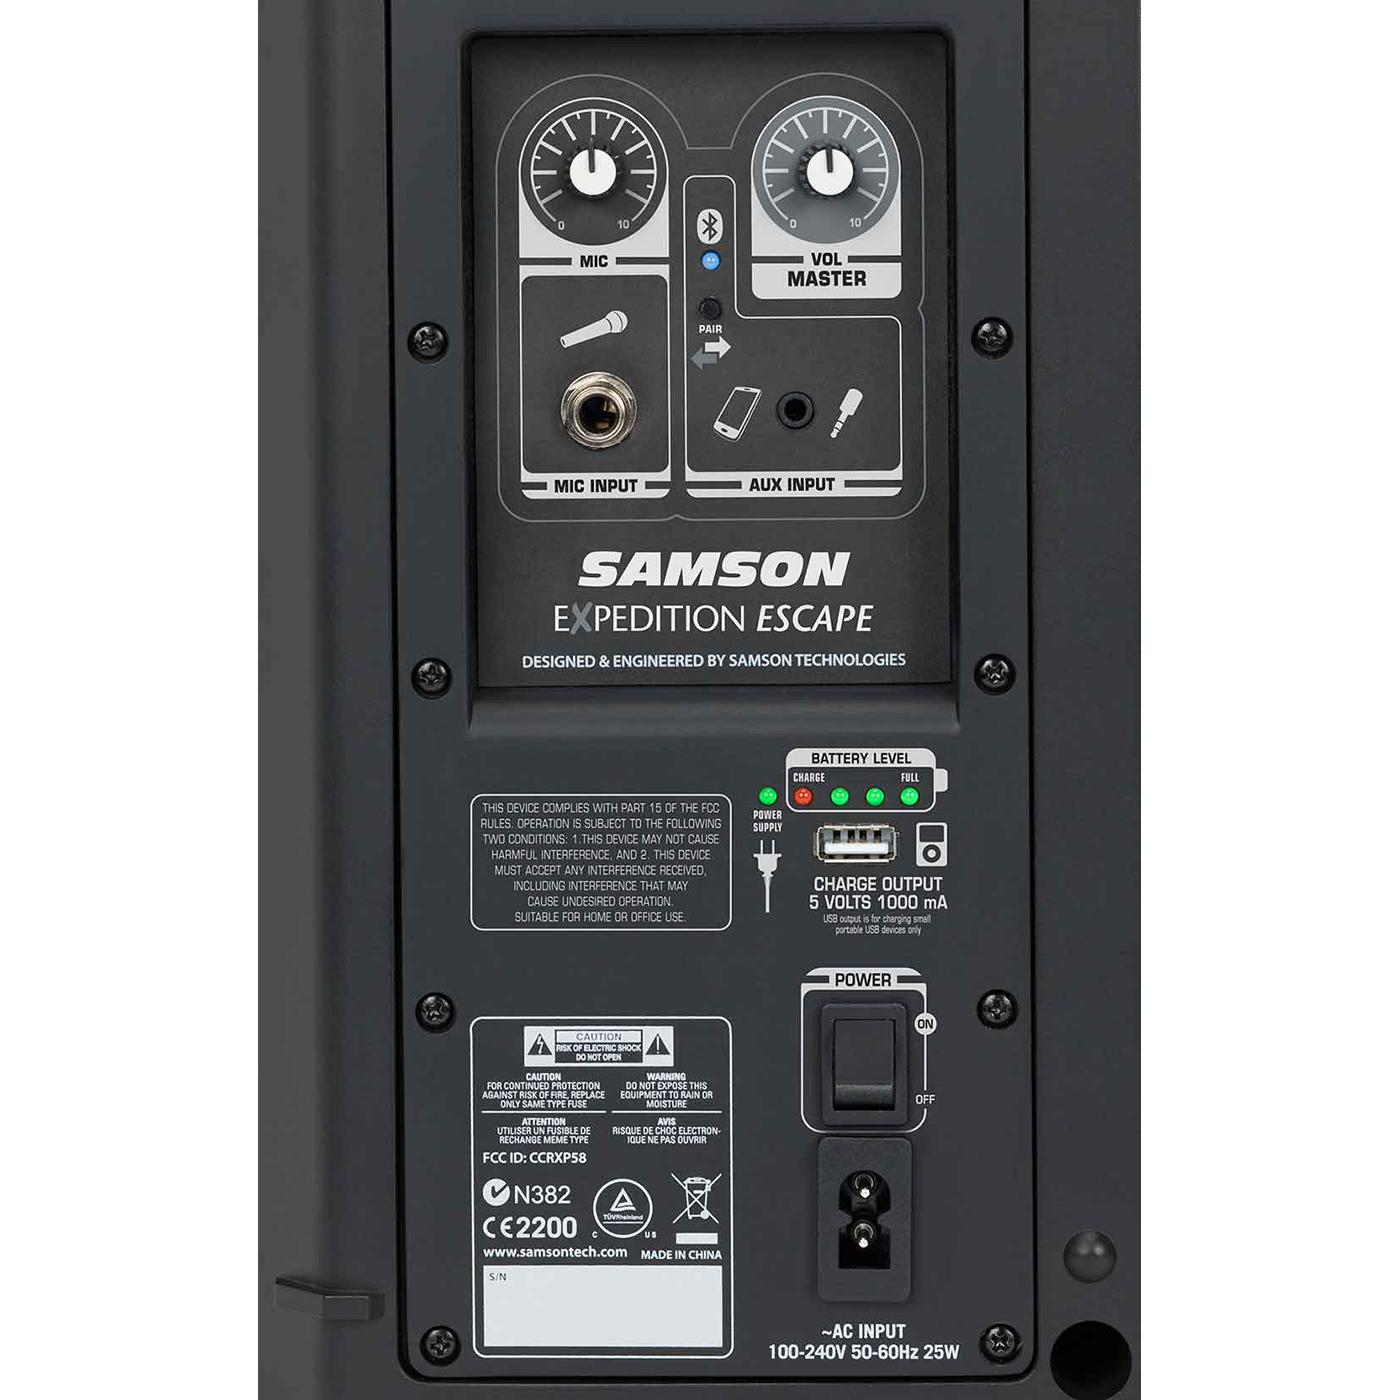 Samson Expedition Escape Rechargeable Speaker System With